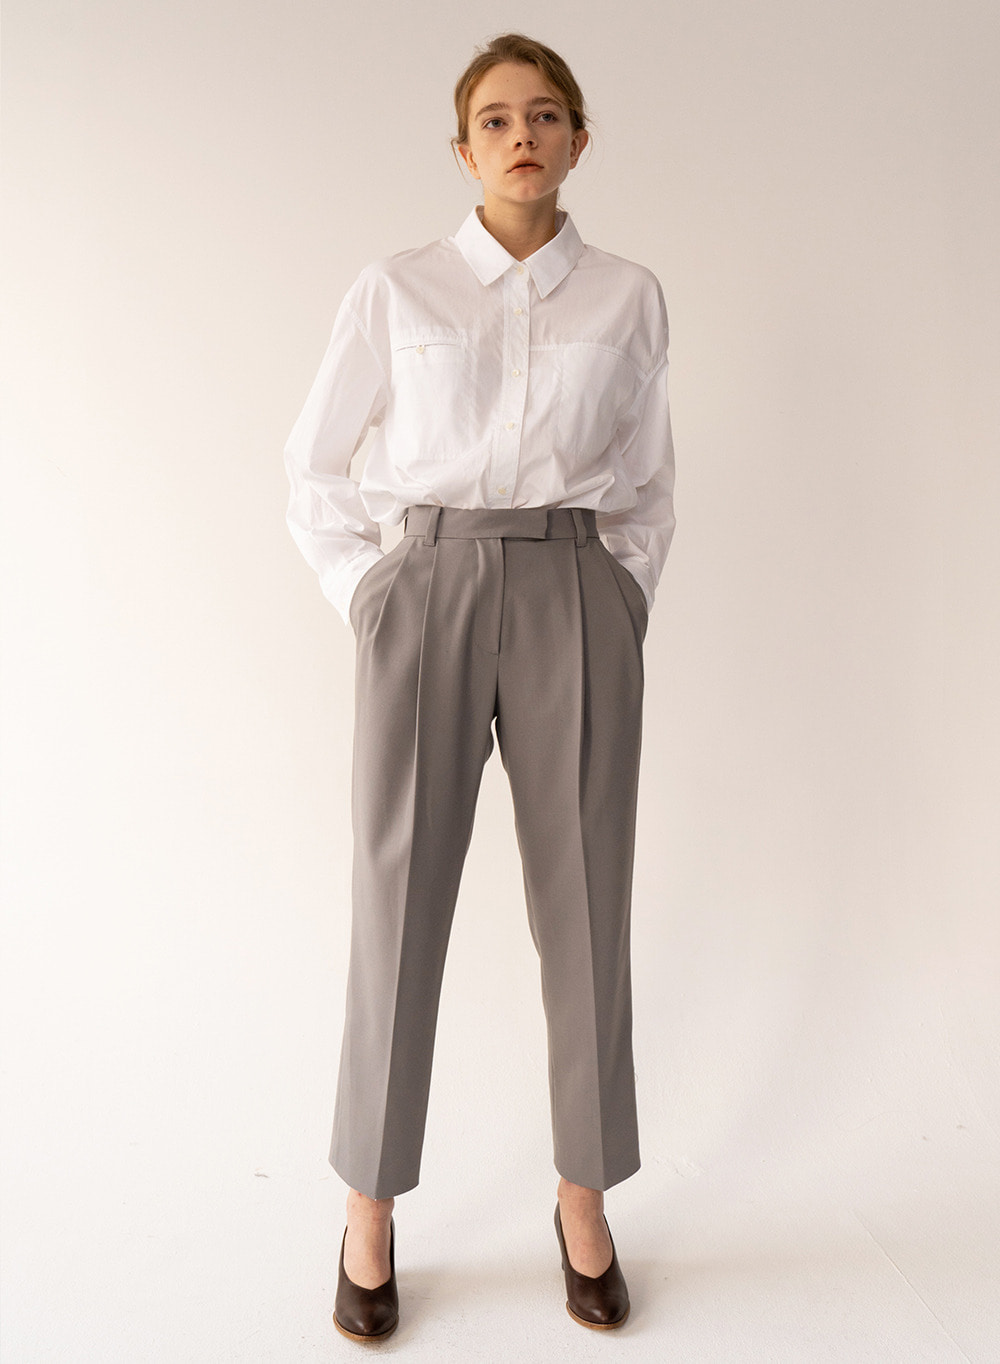 [FW20 ESSENTIAL] Premium Cotton Shirt From Italy (CANCLINI) White